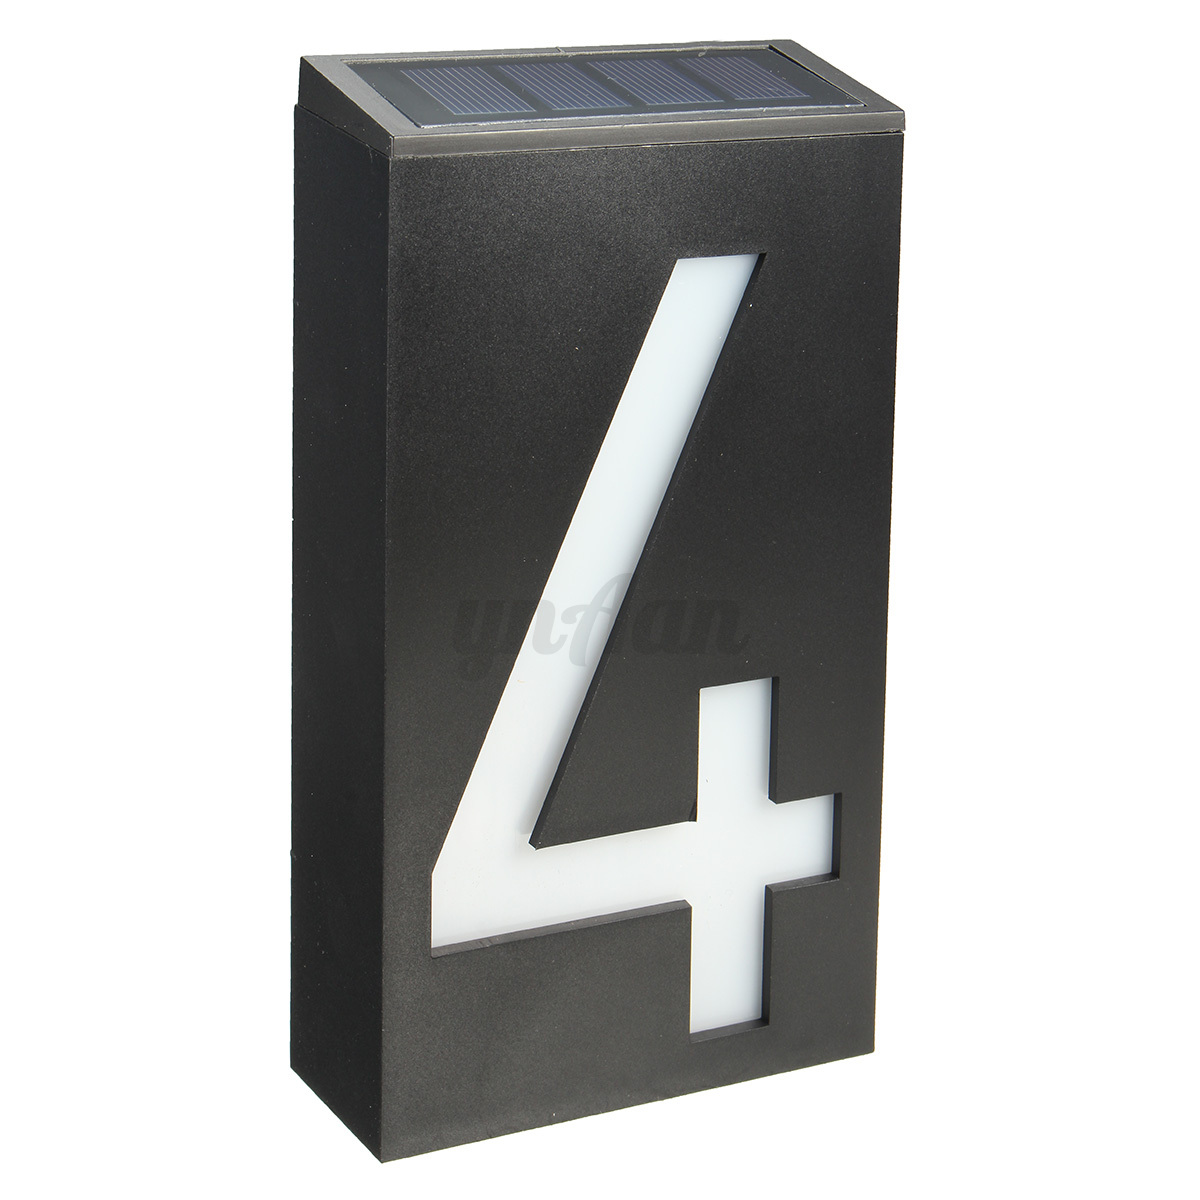 solar power 6 led number 0 9 light sign house door address. Black Bedroom Furniture Sets. Home Design Ideas